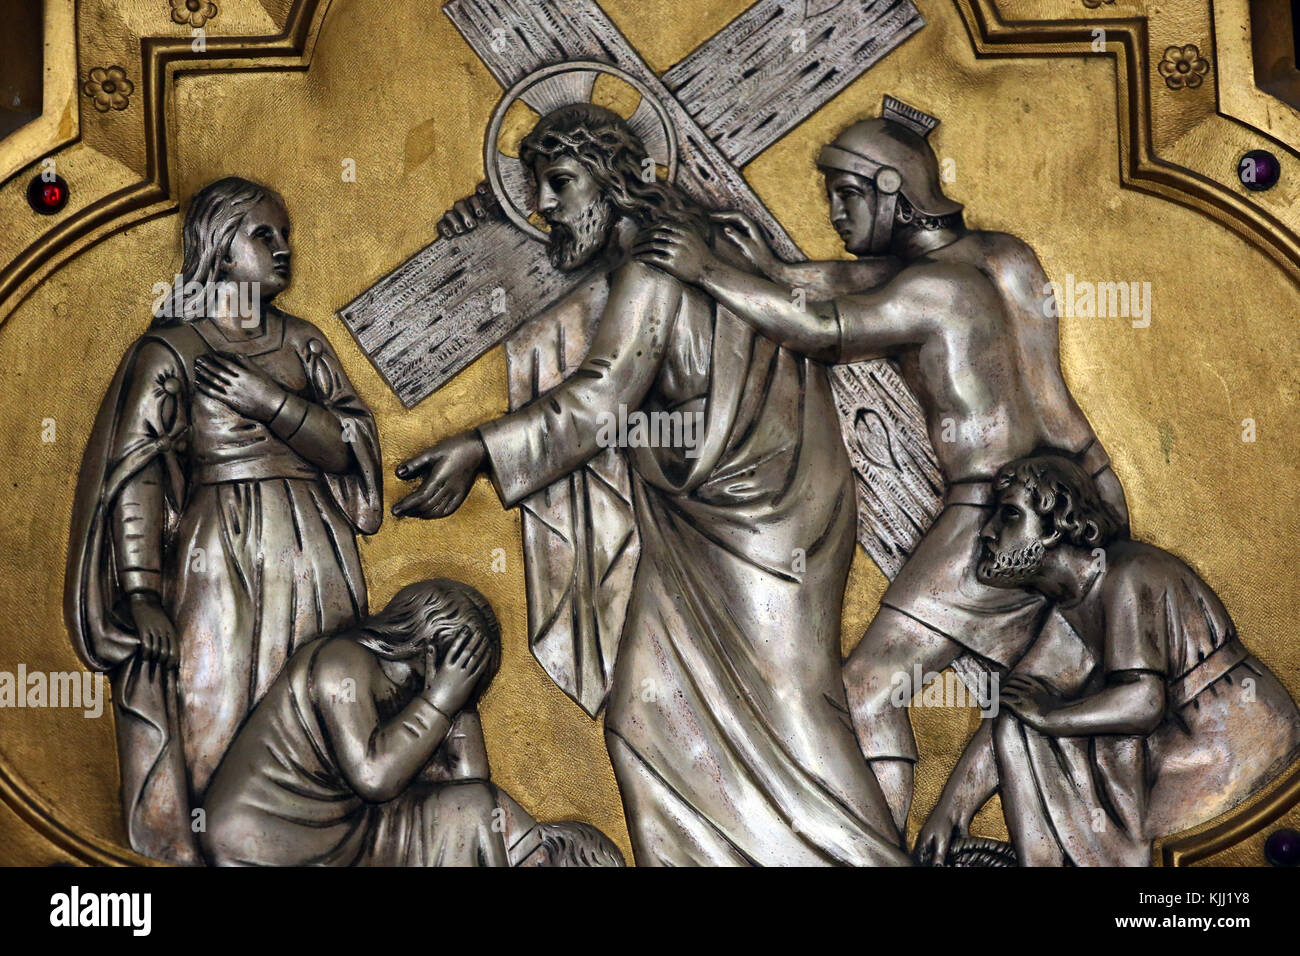 Saint Fargeau church. Passion of Jesus Christ. Way of the cross. Station 8.  France. - Stock Image